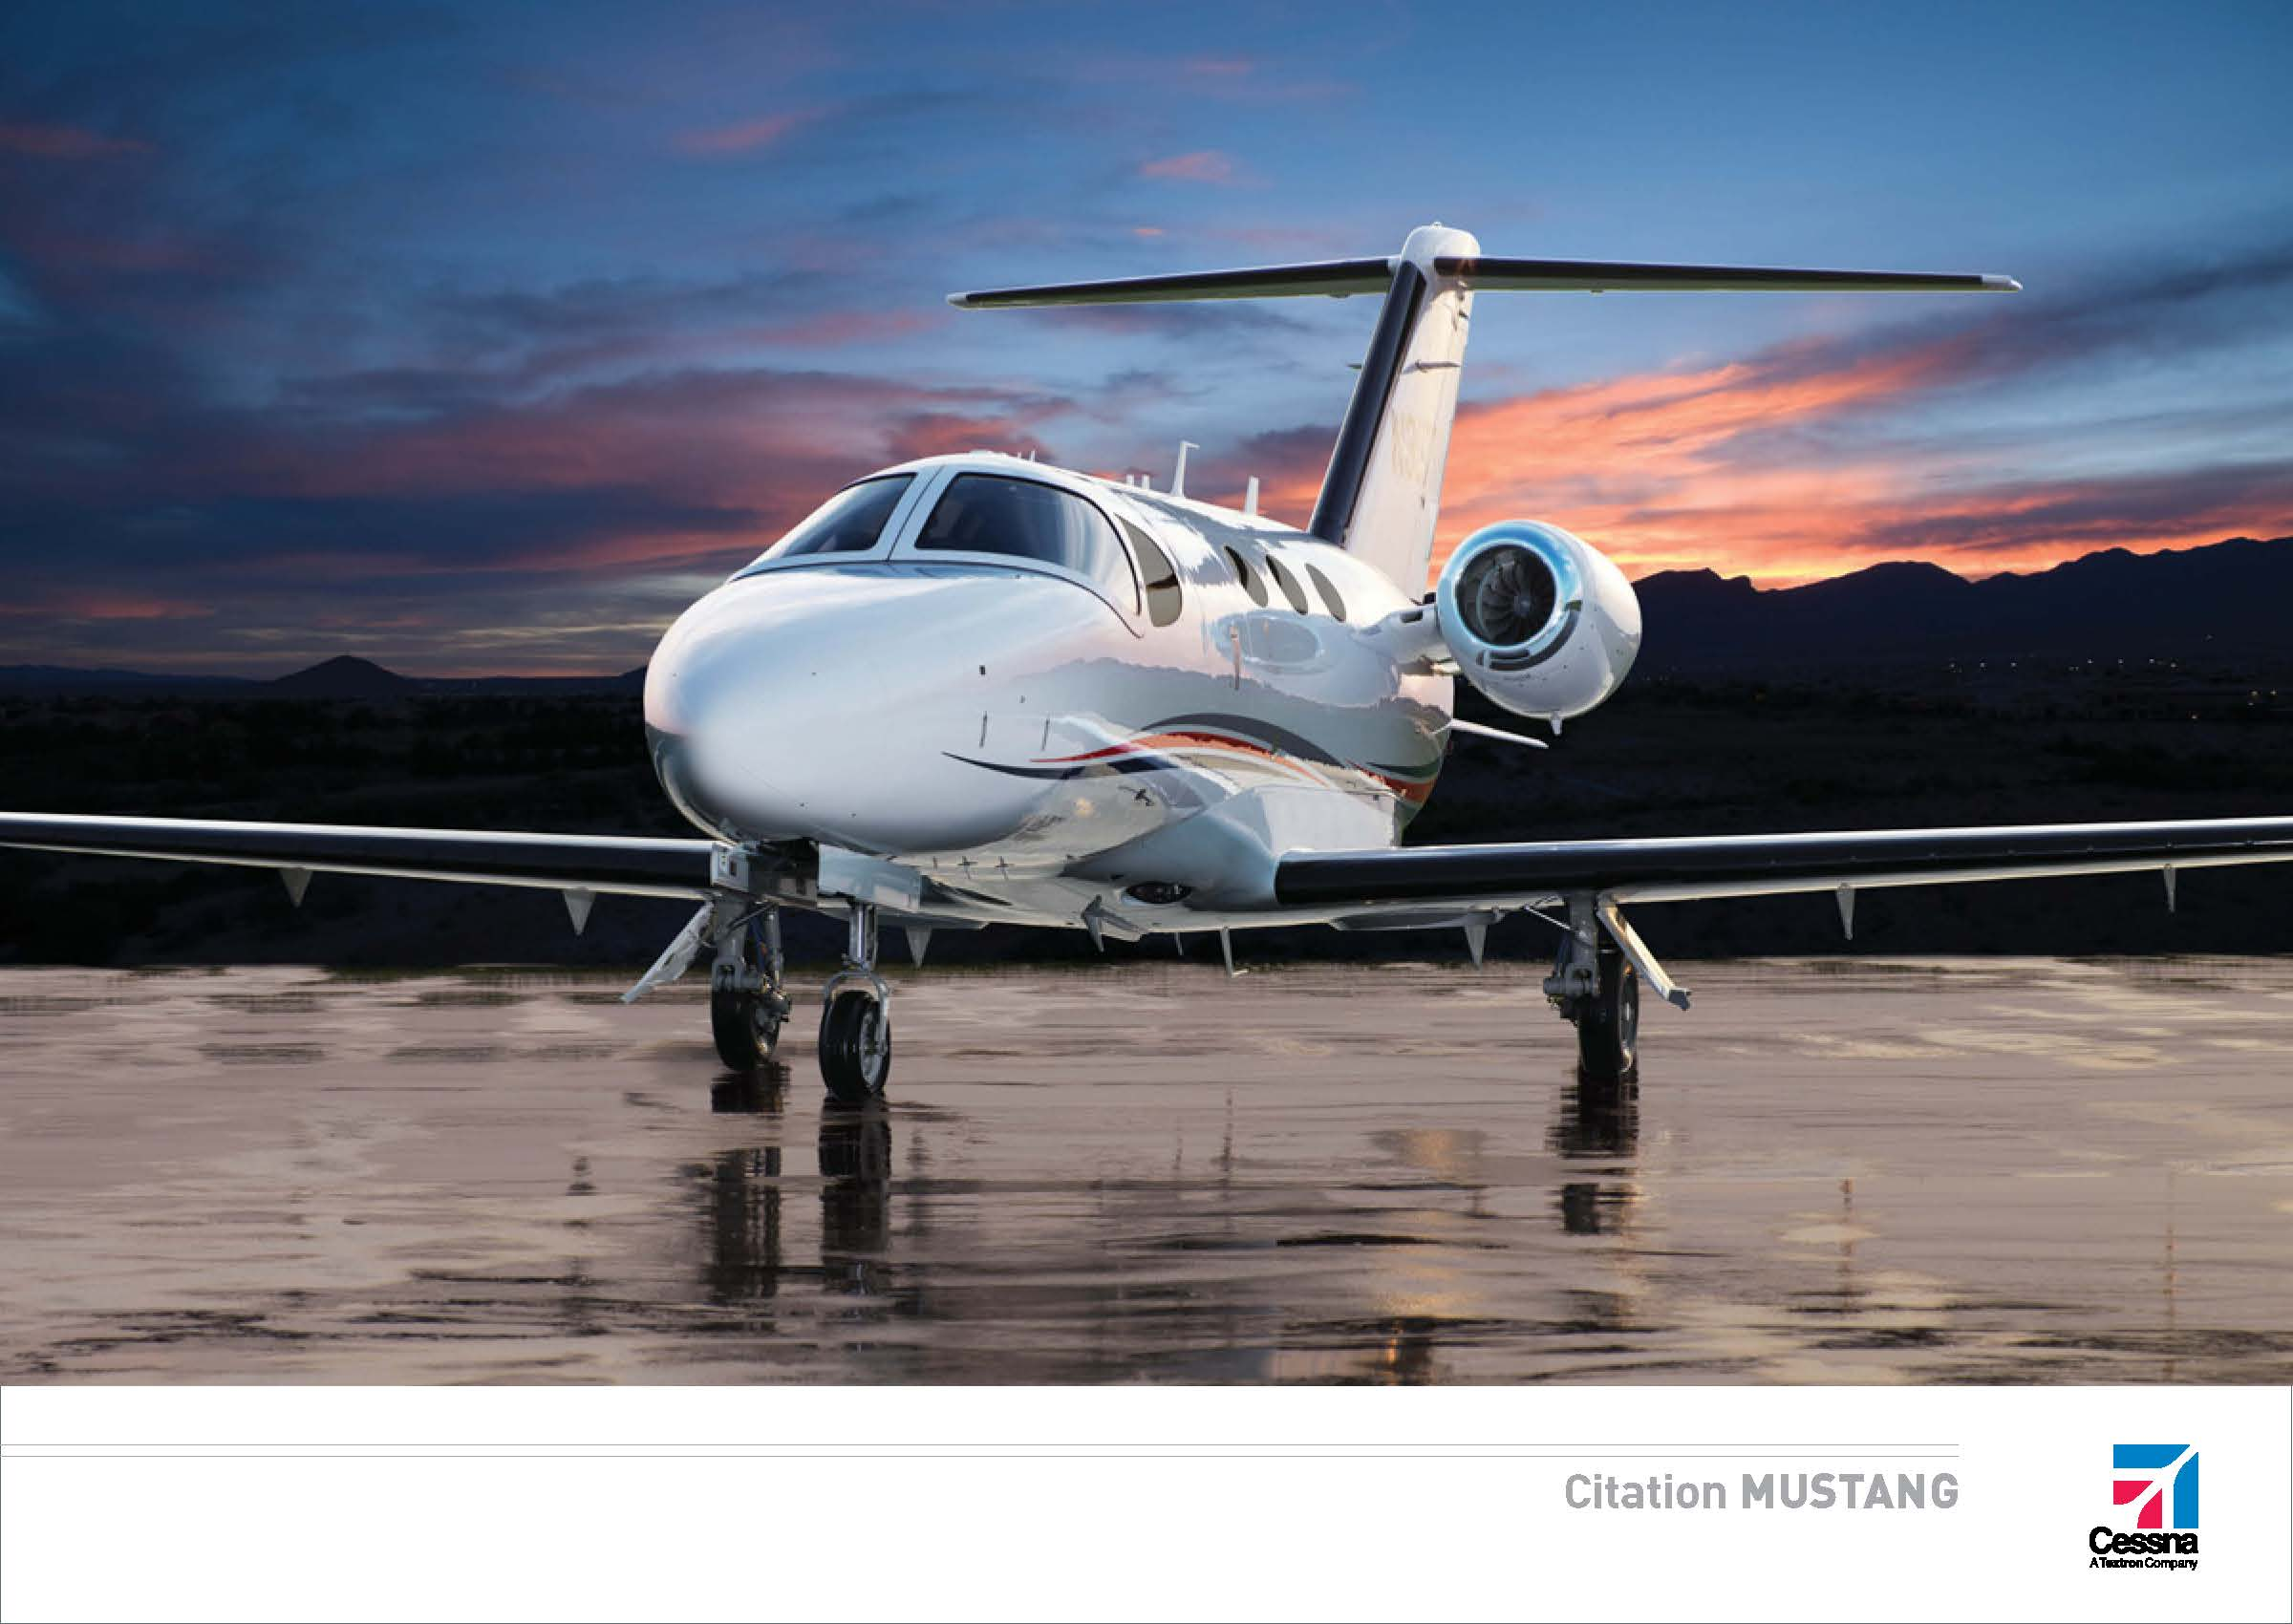 Citation Mustang electronic brochure